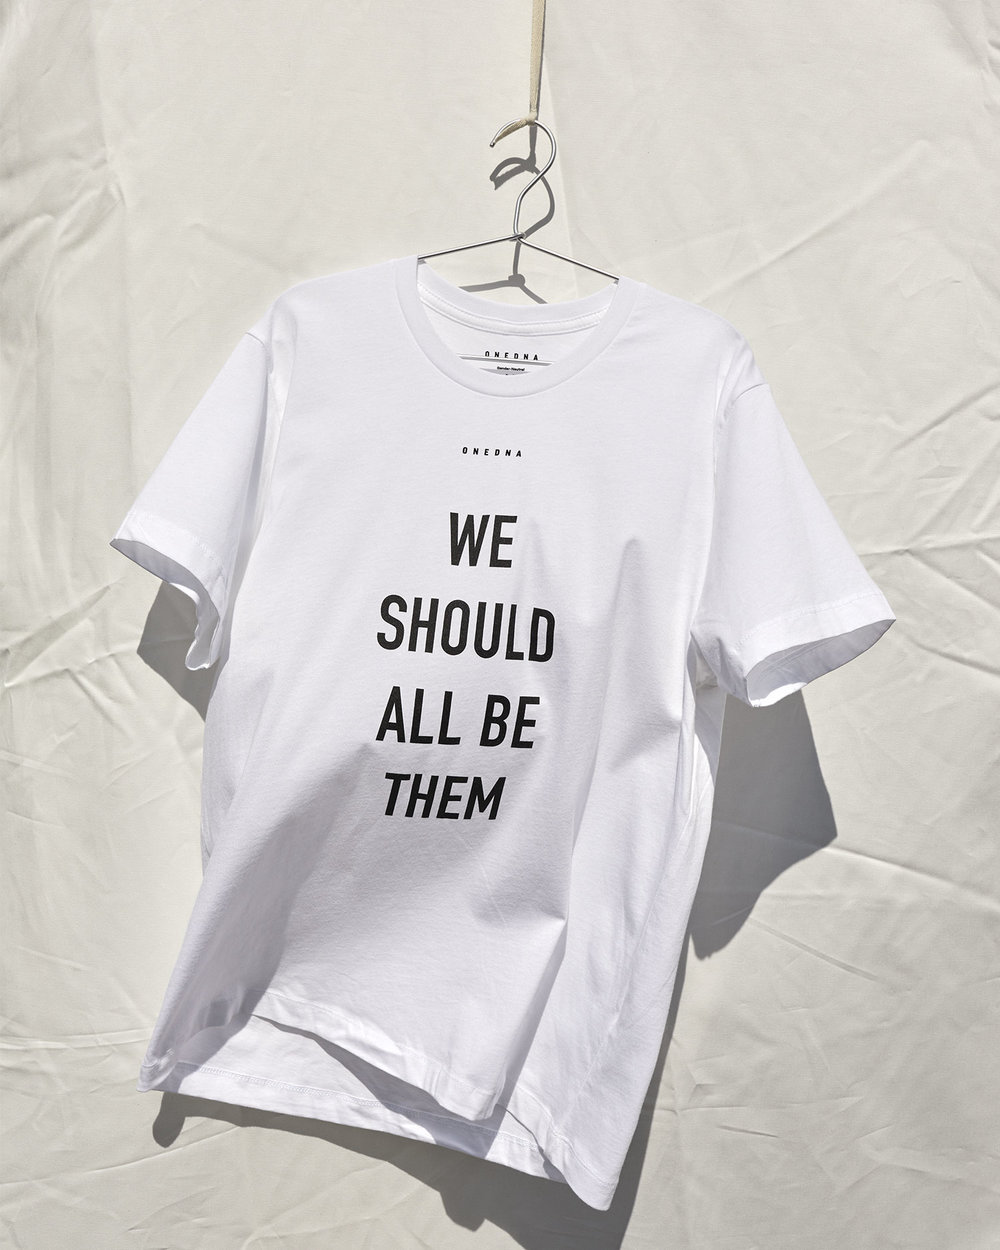 Shop The Official We Should All Be Them T-shirt Online At One DNA's Website.